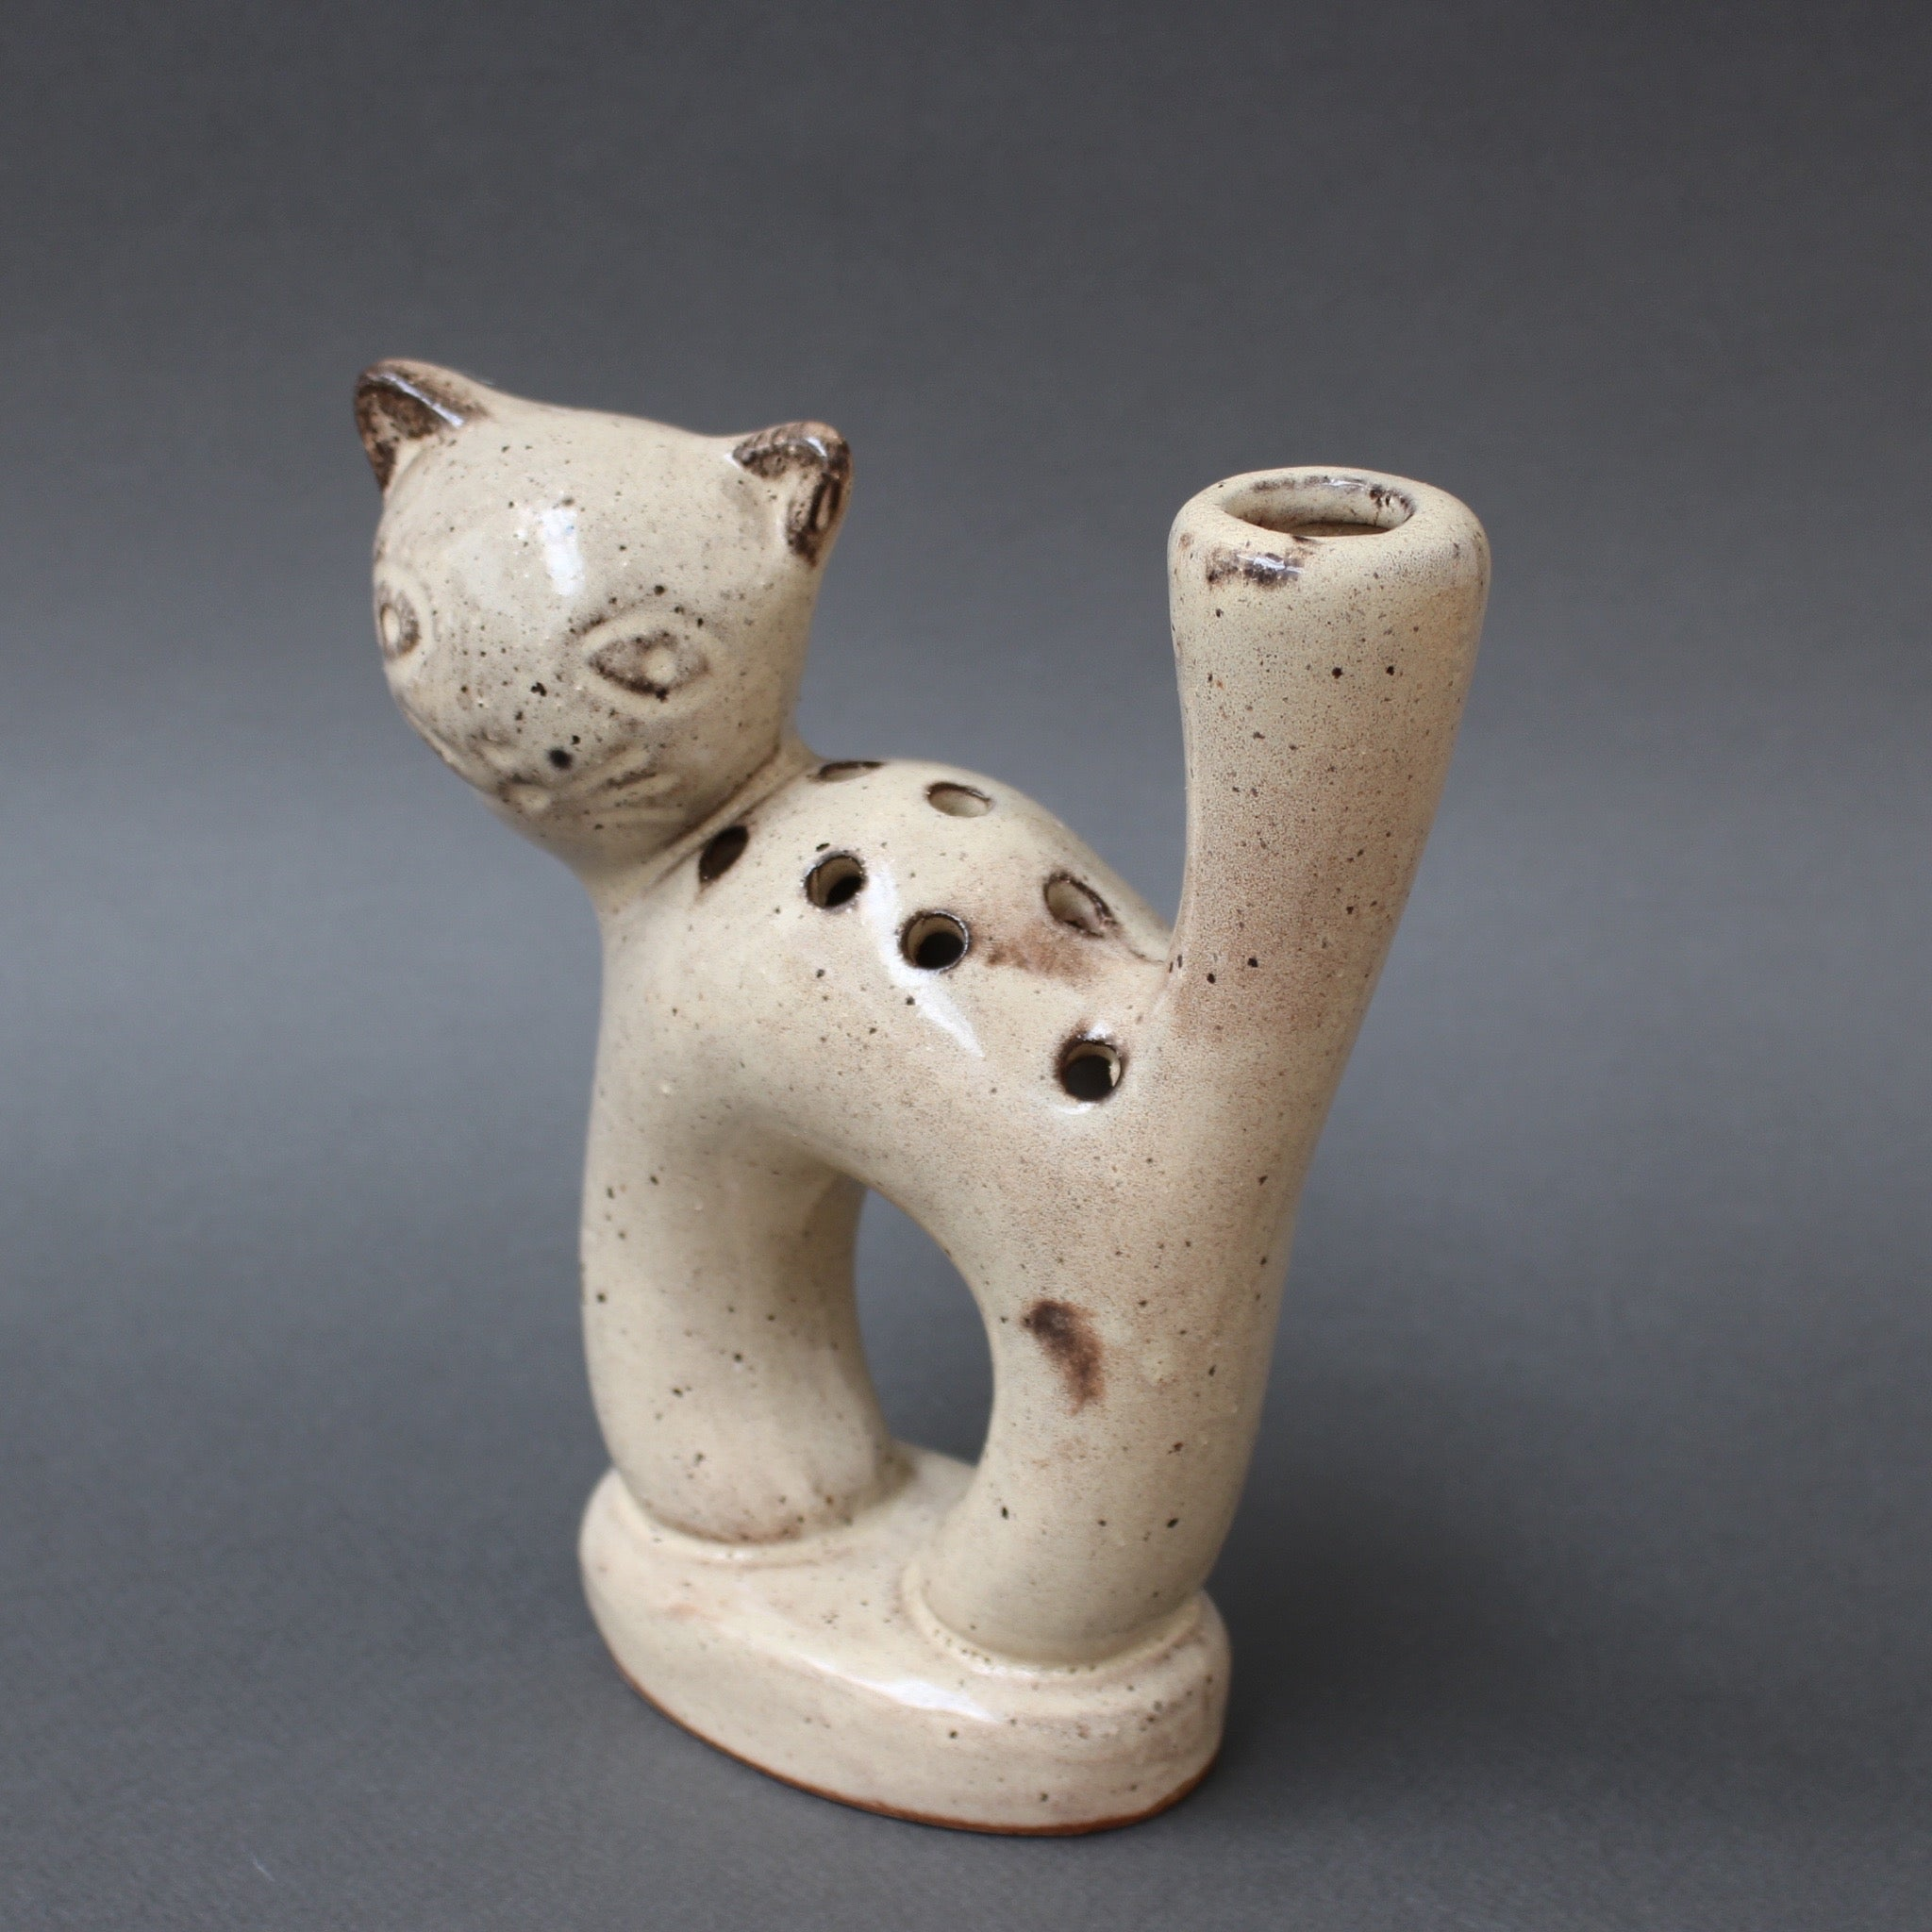 Stylised Ceramic Cat Vase by Les Grottes Dieulefit (circa 1960s)